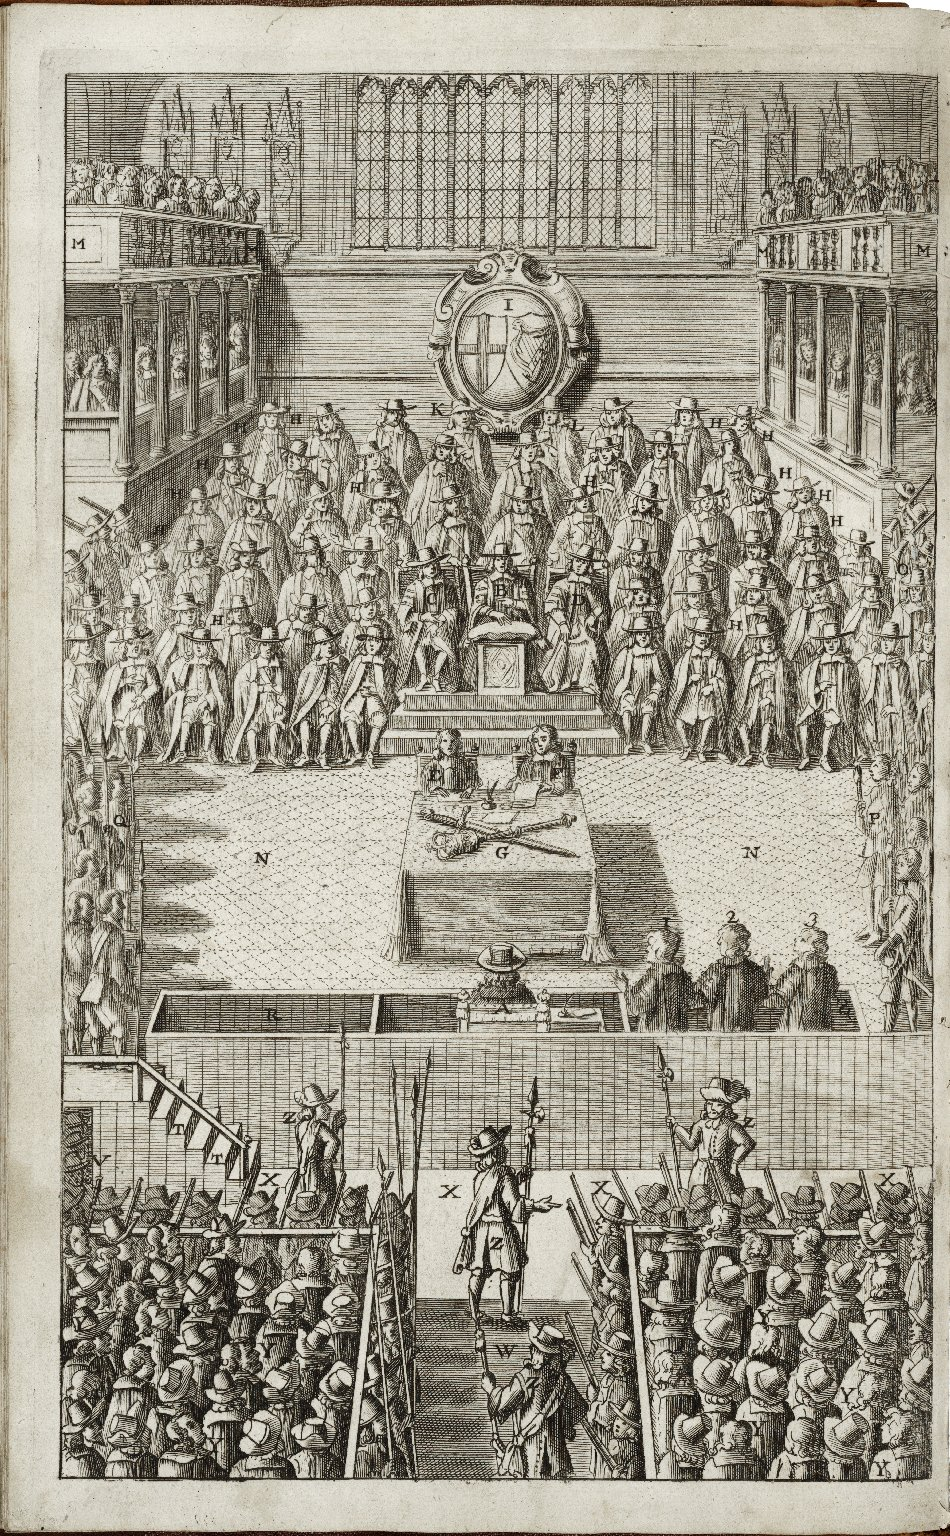 A true copy of the journal of the High Court of Justice, for the tryal of K. Charles I. As it was read in the House of Commons, and attested under the hand of Phelps, clerk to that infamous court...